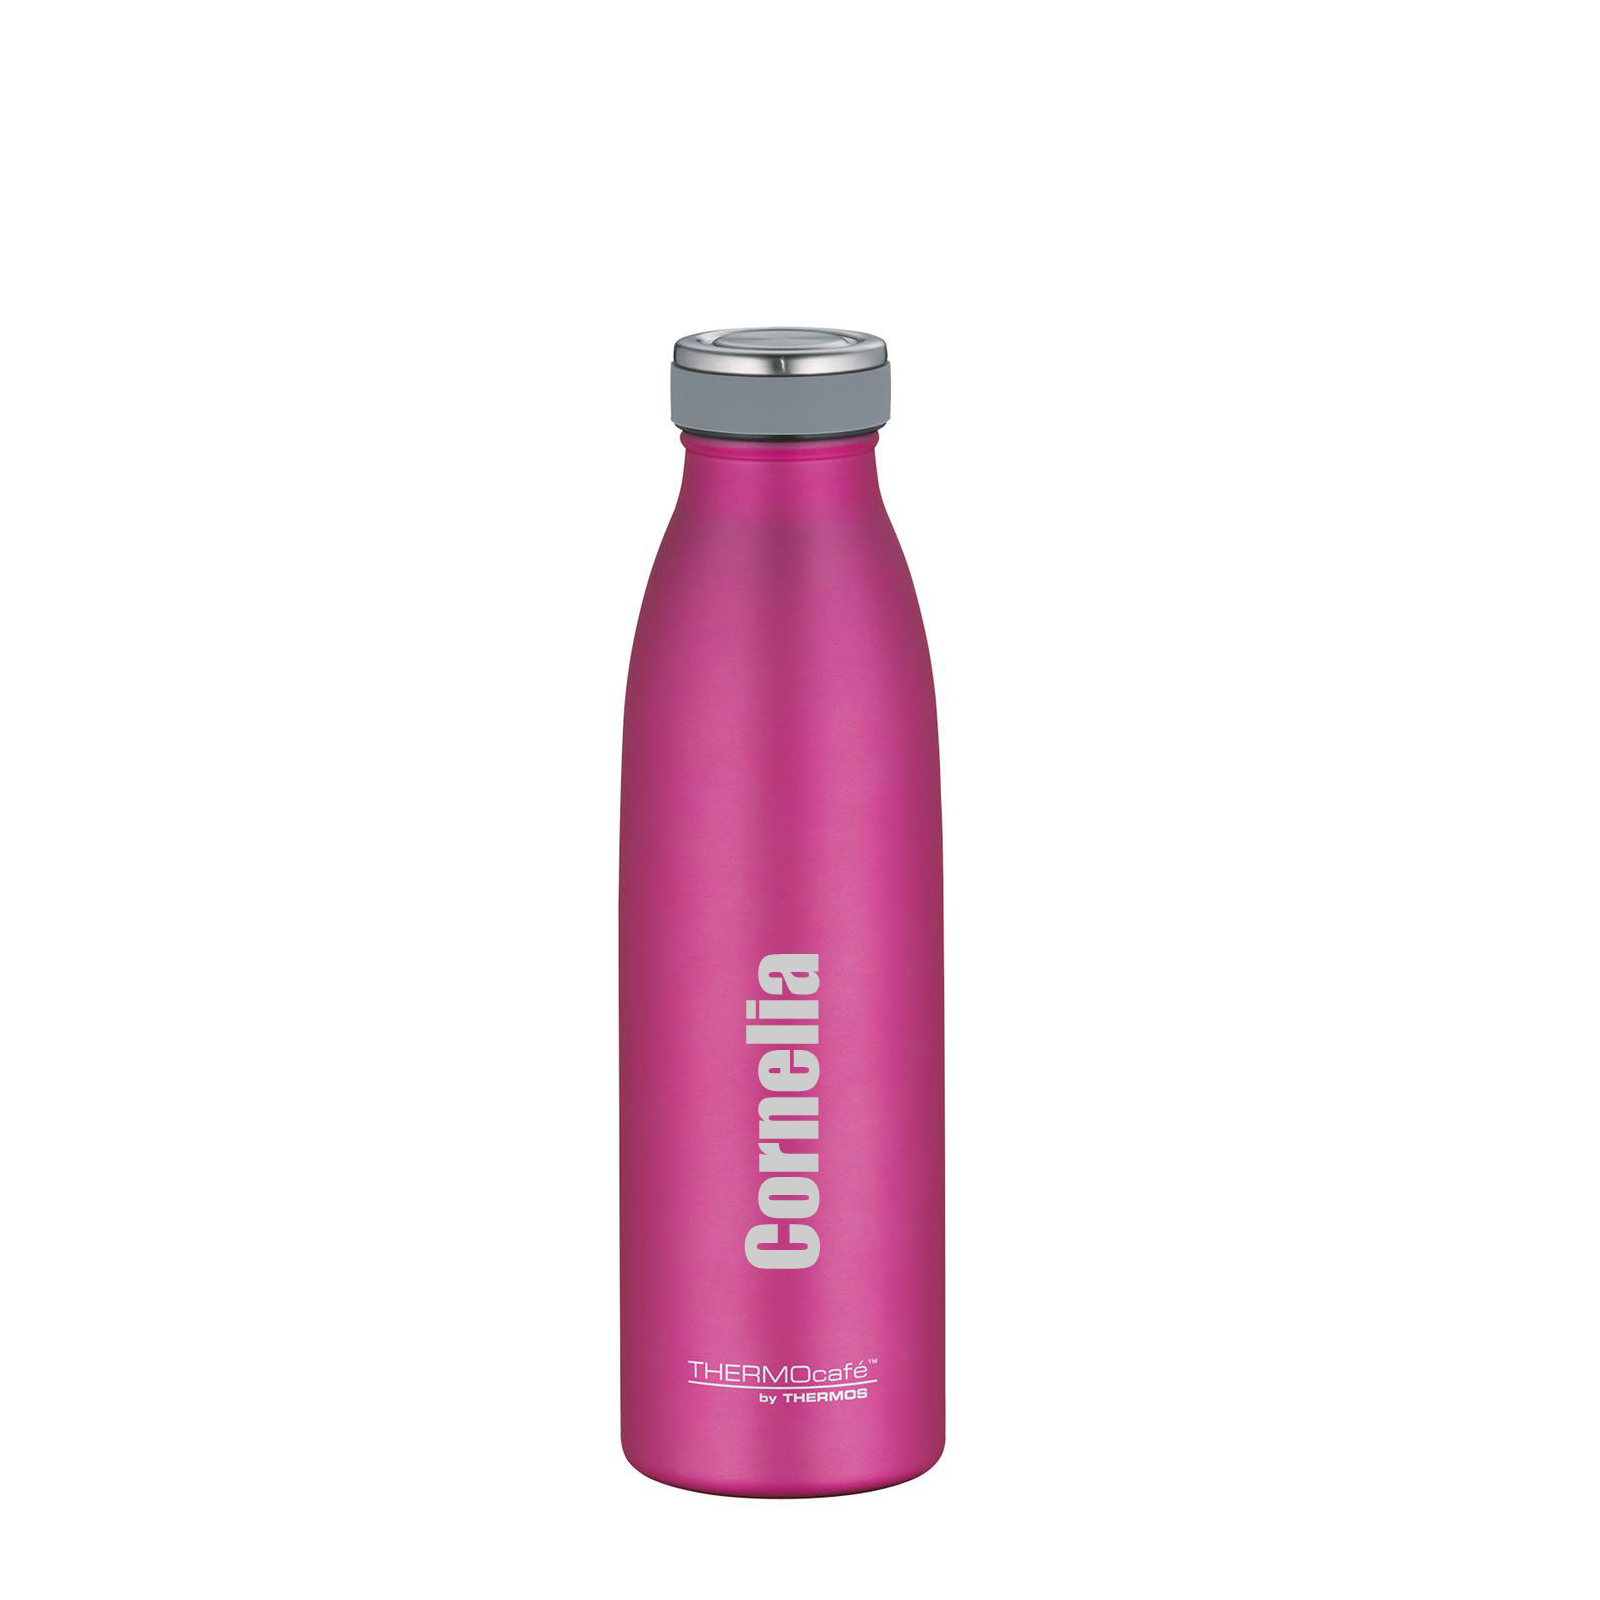 Personalisierte TC Bottle Thermosflasche Pink Matt 0,5 Liter Isolierflasche